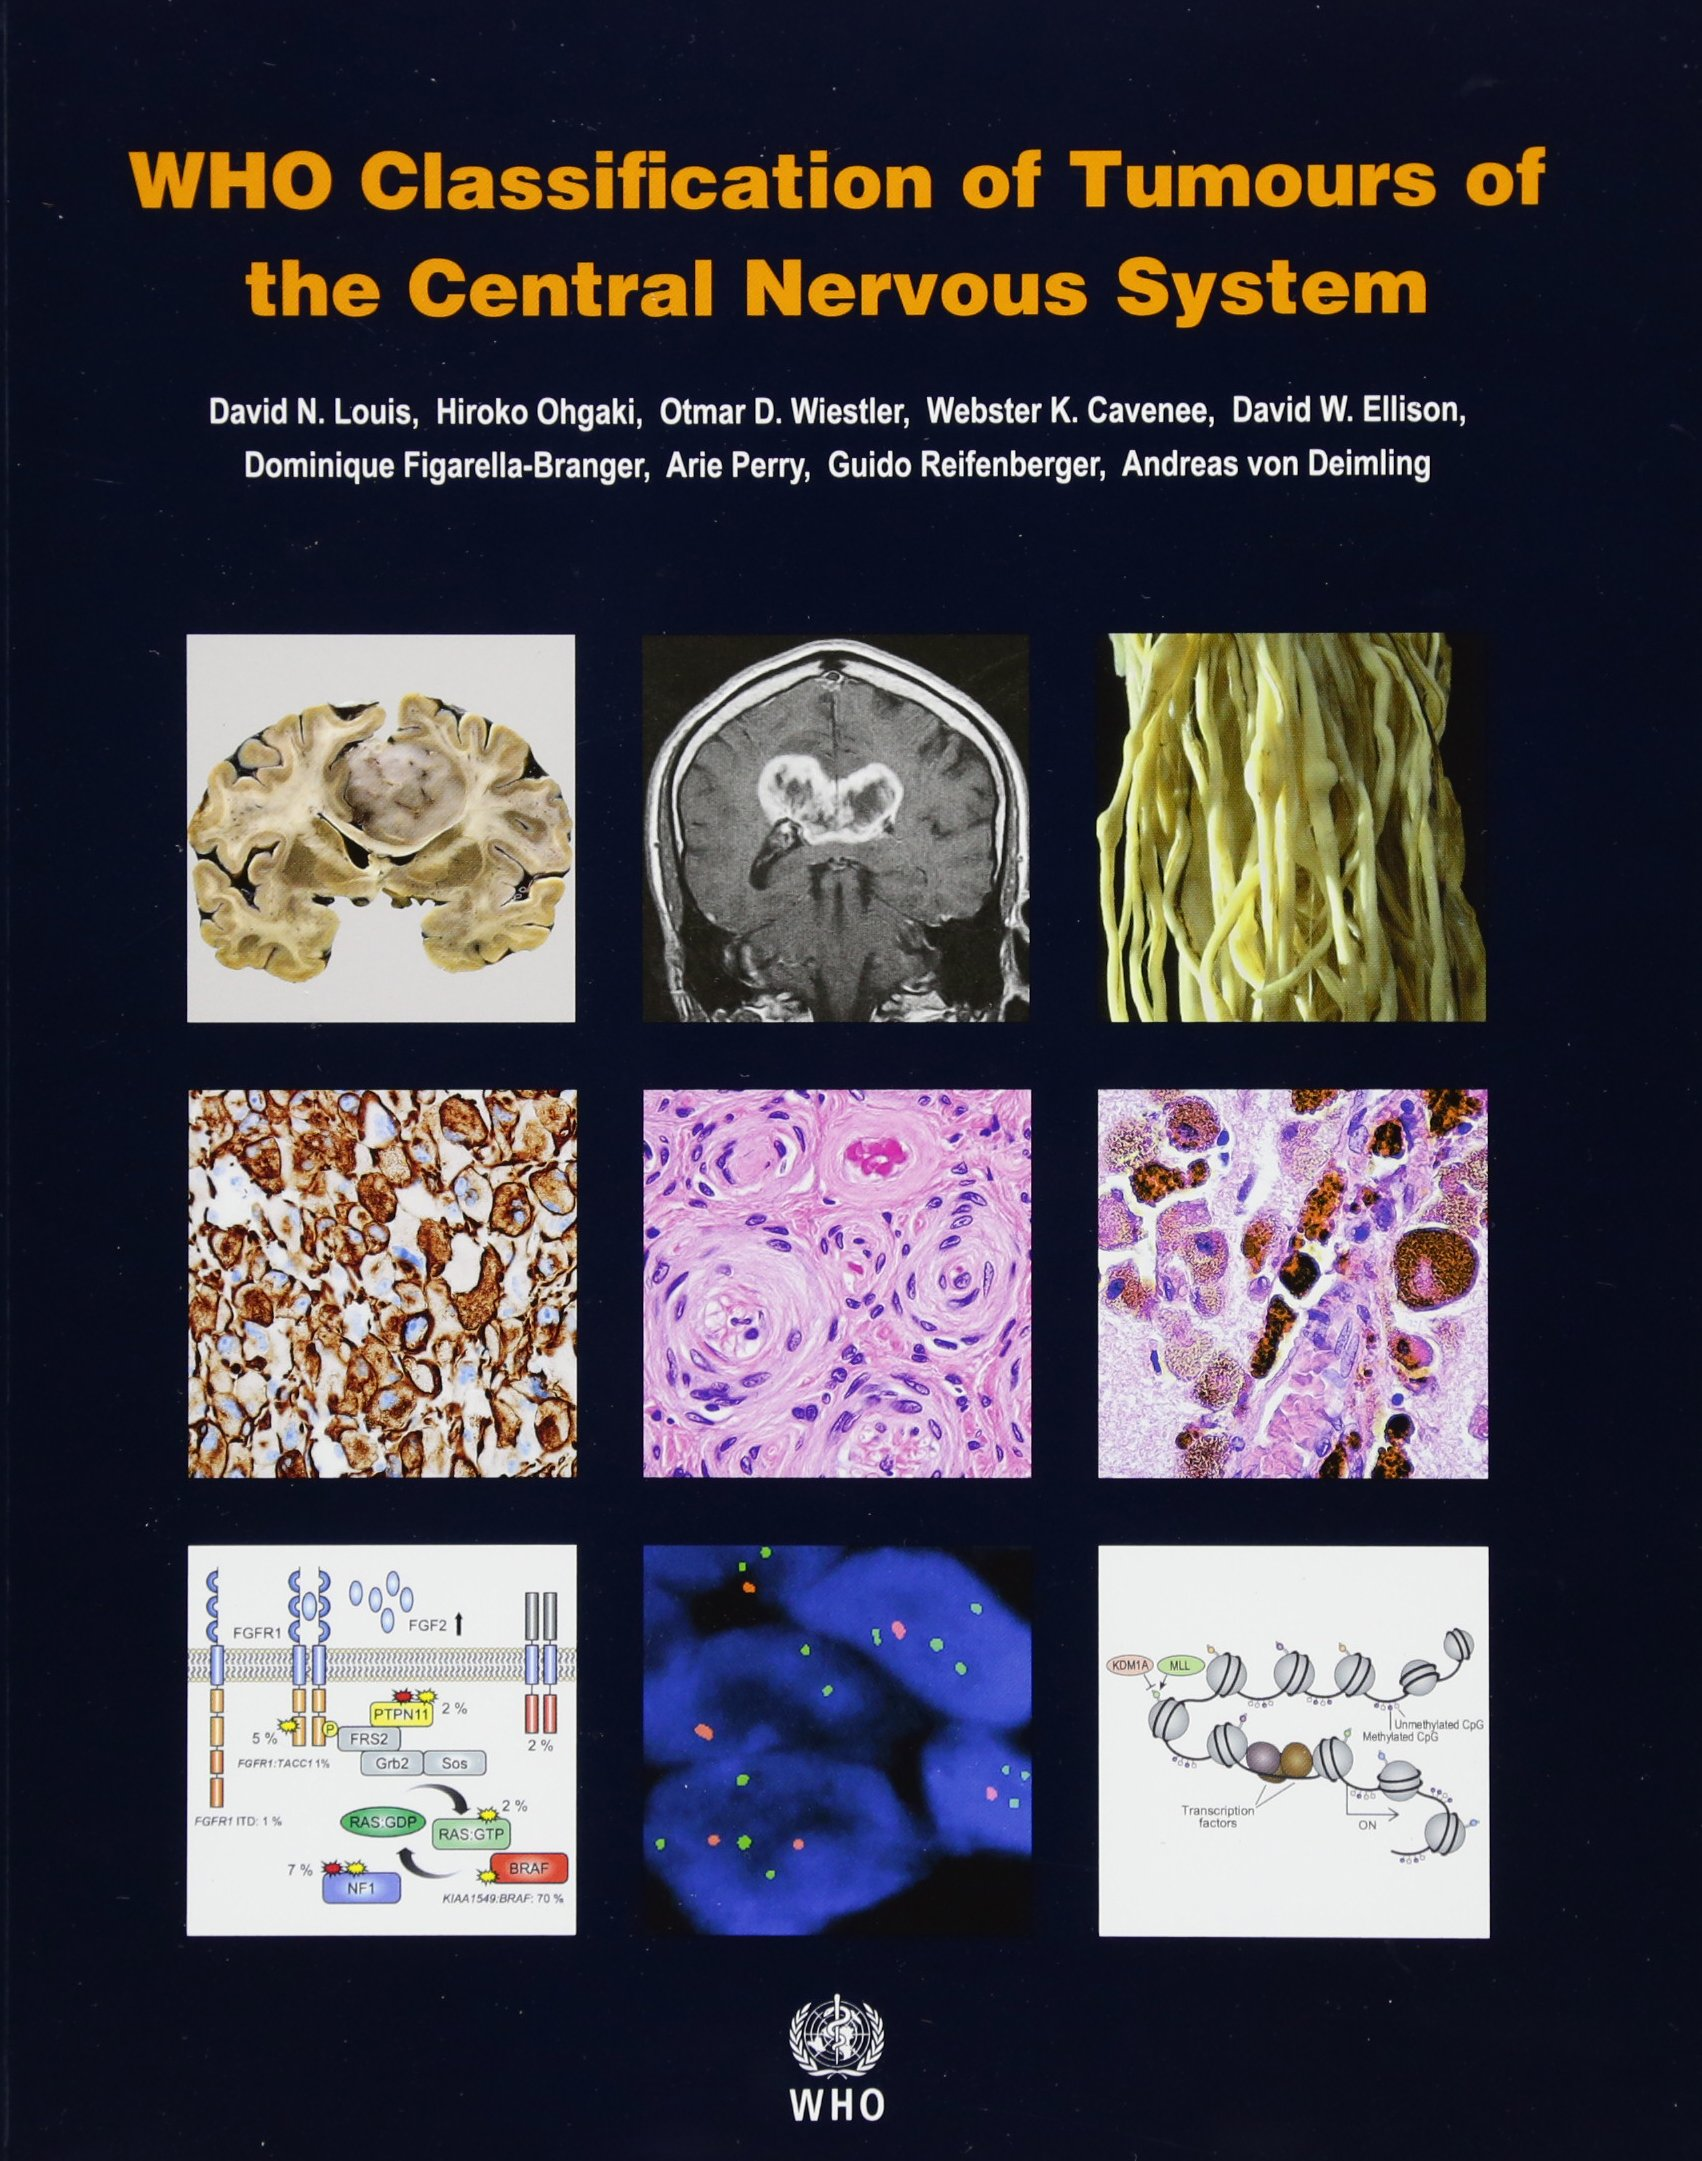 Histological Typing of Tumours of the Central Nervous System